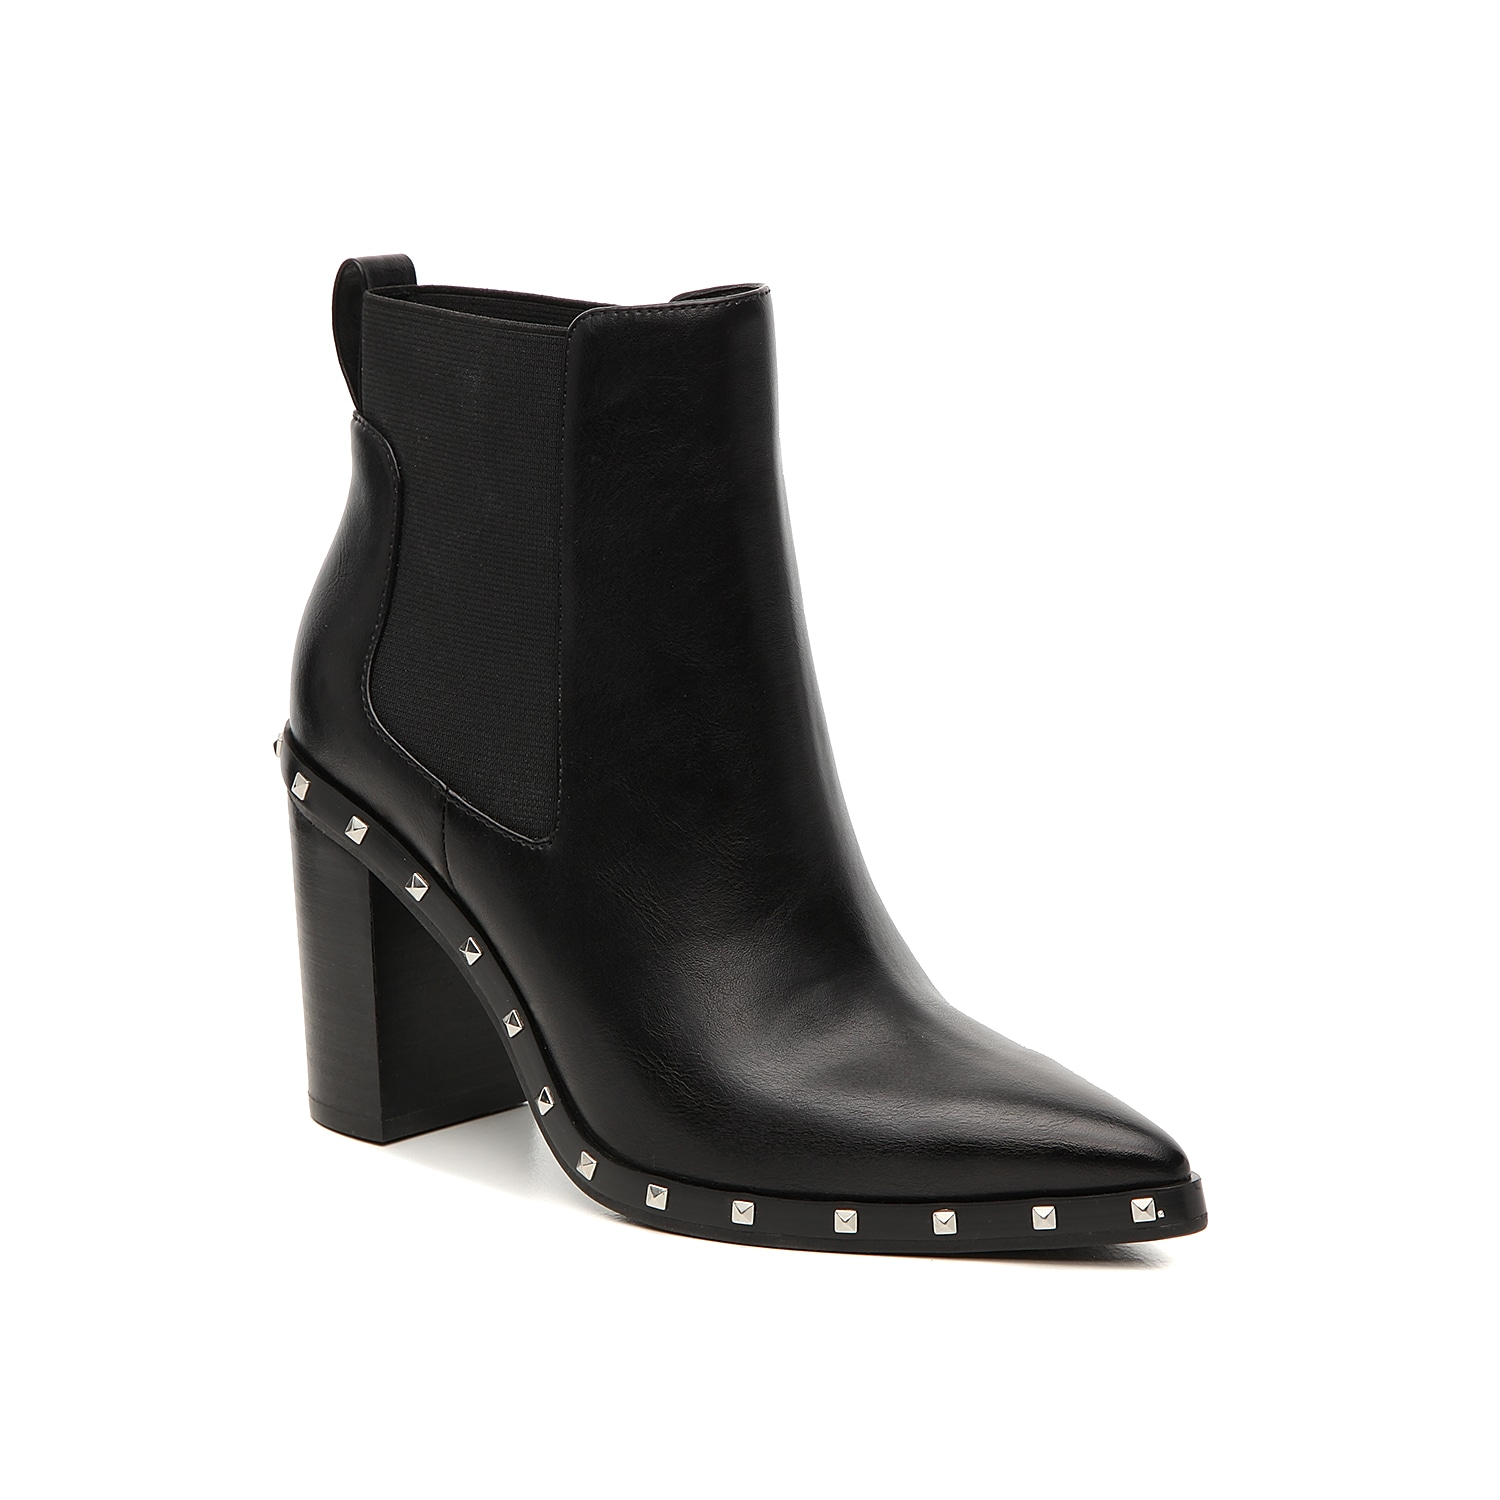 The Dodger chelsea boot from Charles by Charles David is unlike any others. This sleek pair is fashioned with a refined, pointed toe and a studded trim that will give your ensemble the perfect edge!